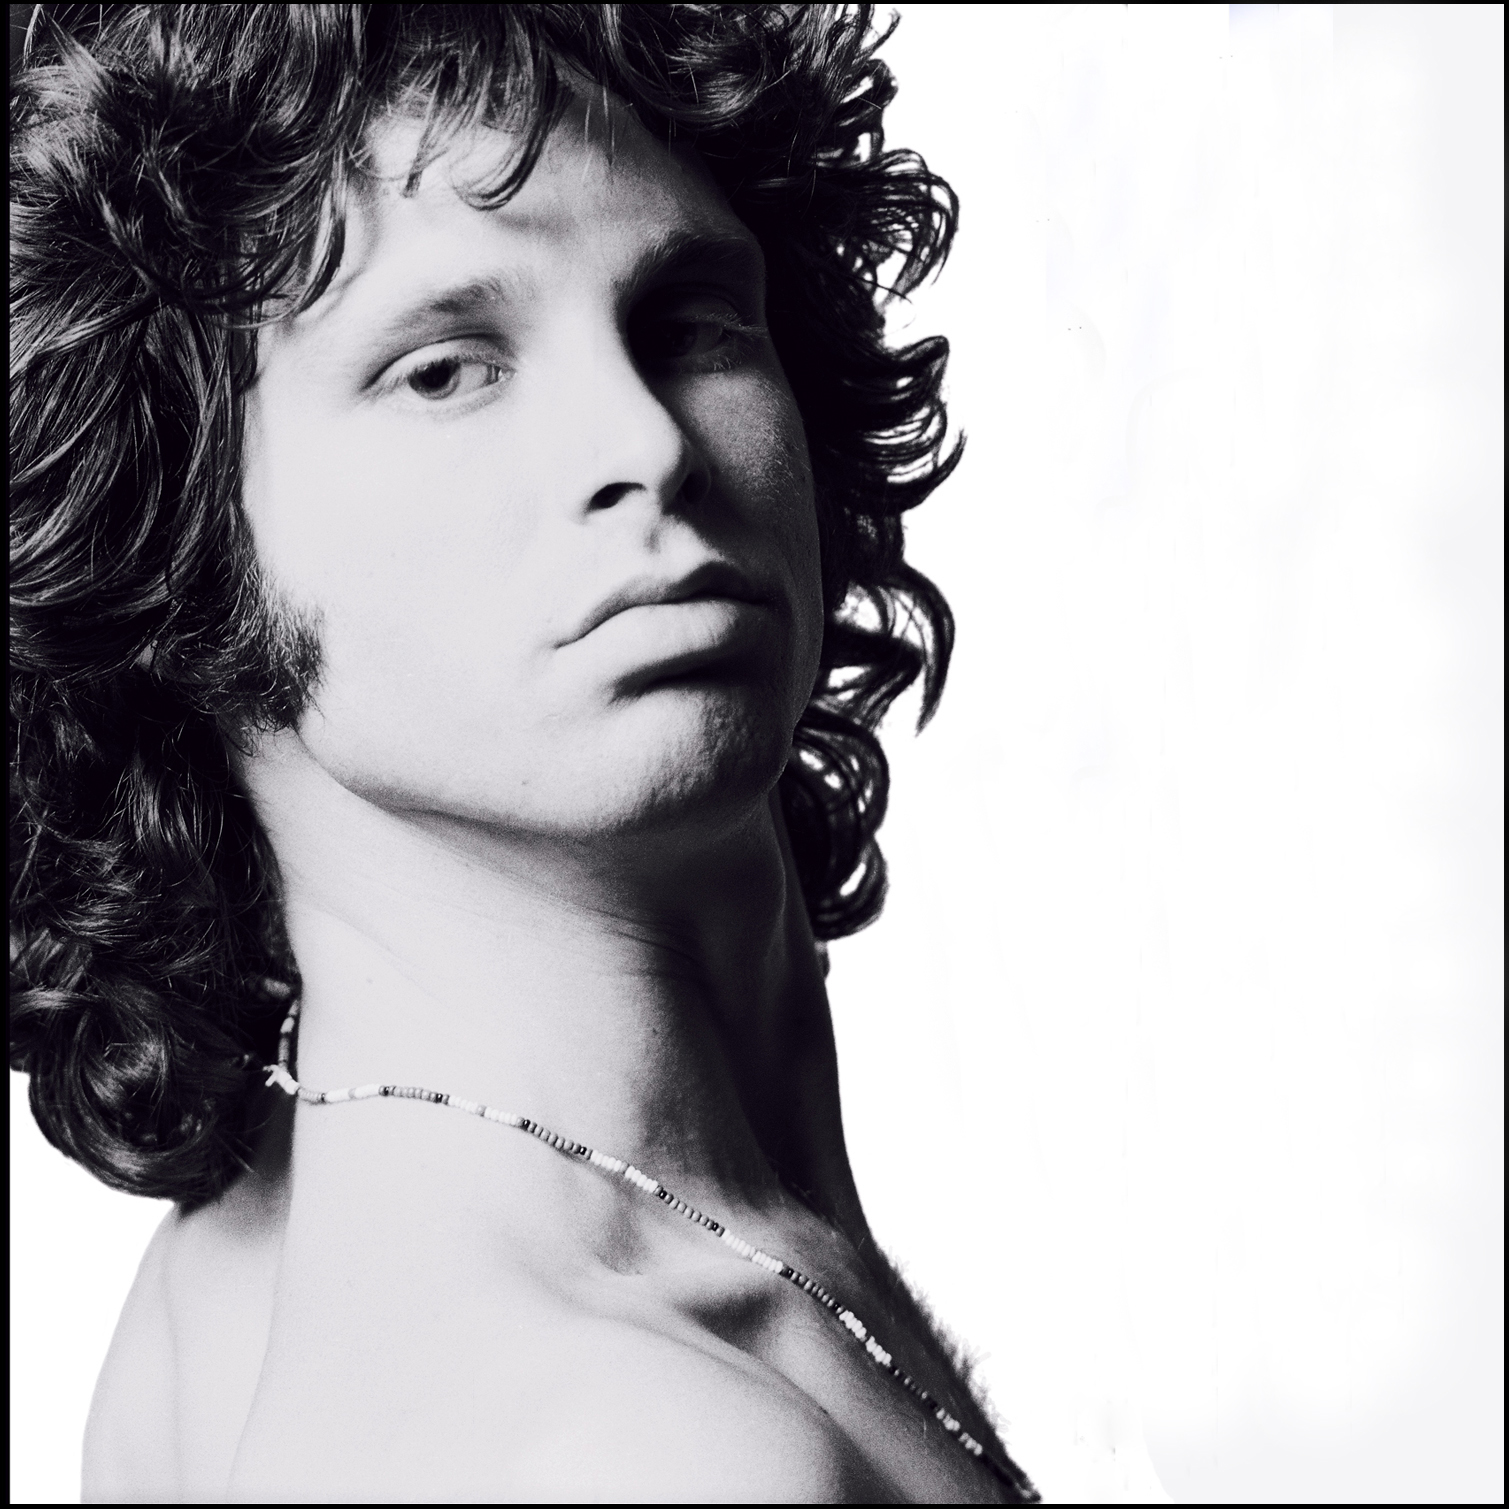 Joel Brodsky: Jim Morrison, The Sniff – Snap Galleries Limited